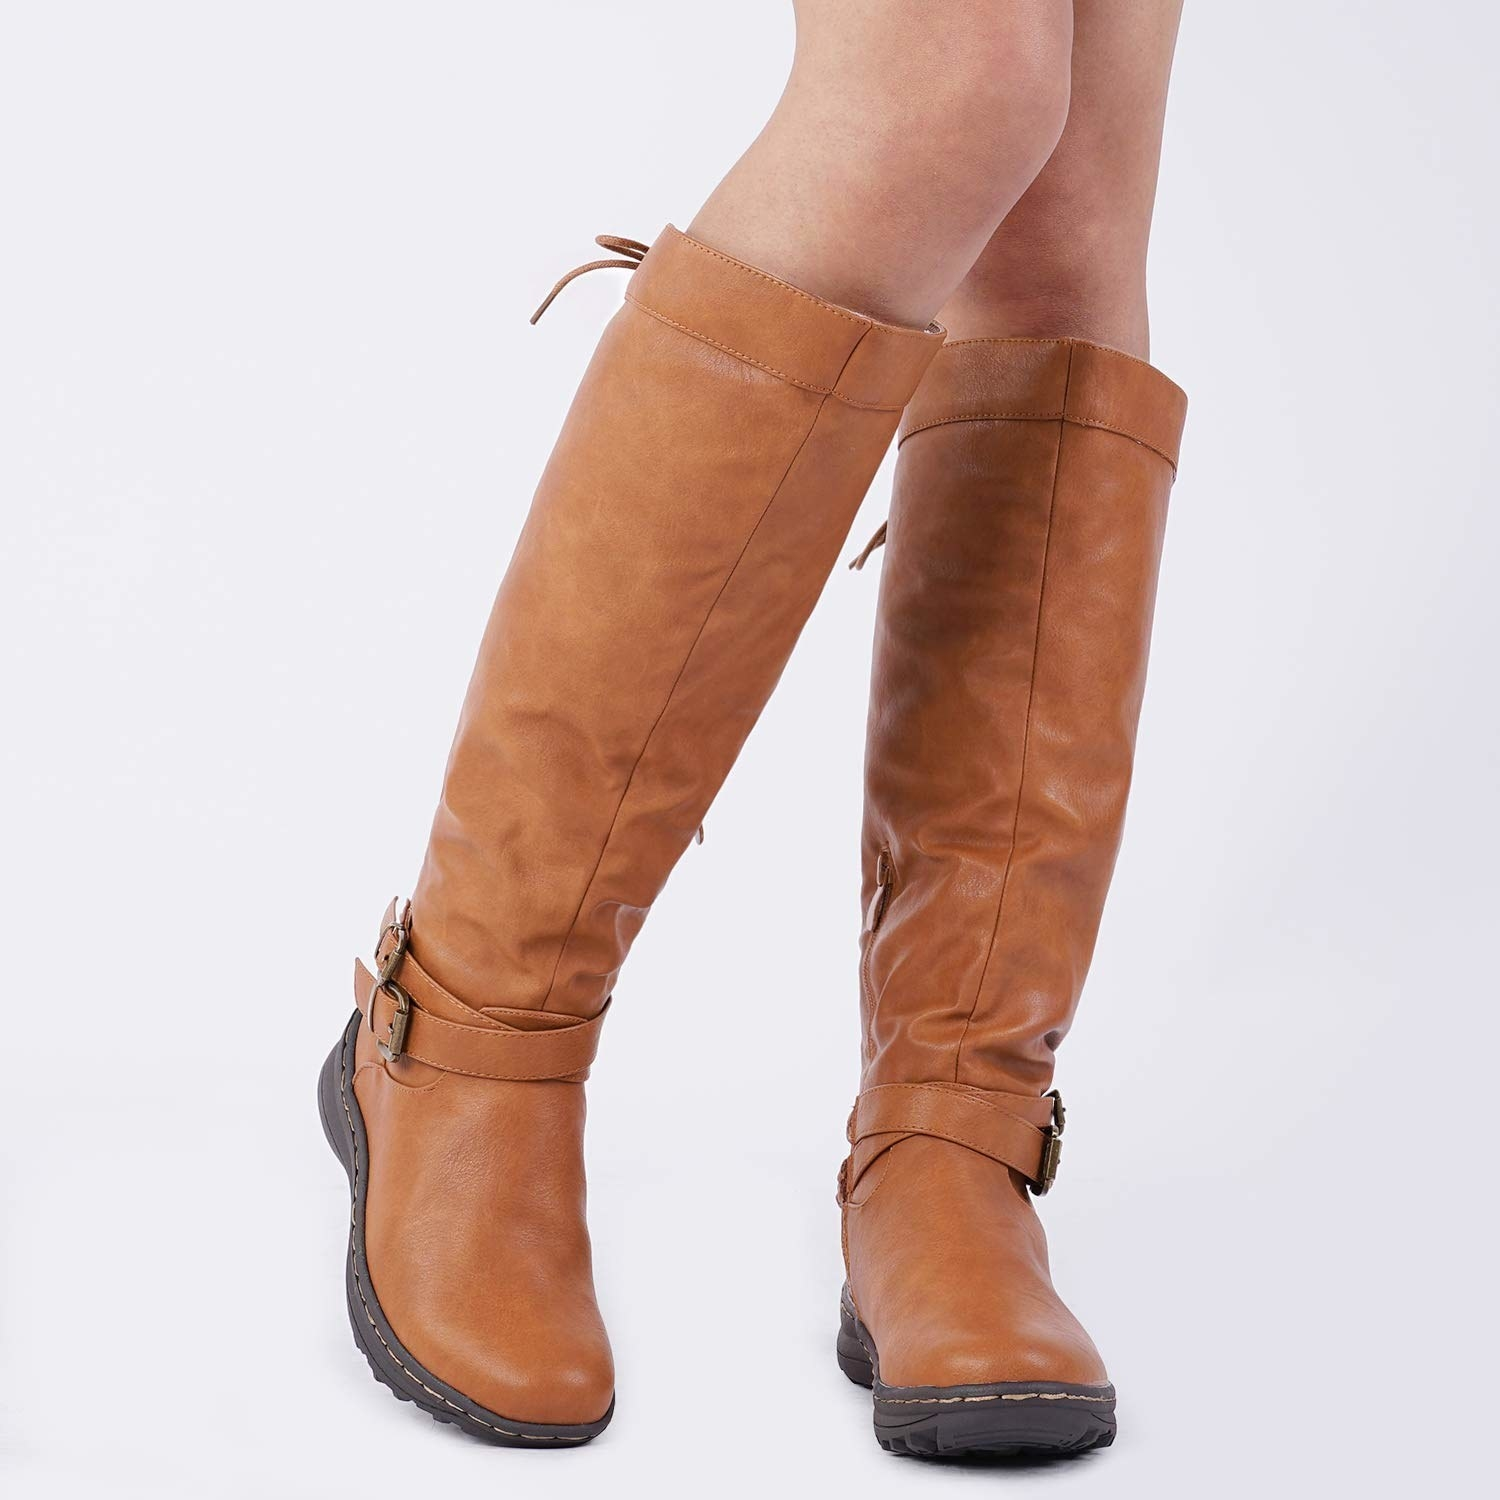 the knee-high boots in brown with two buckles around the ankles and black soles